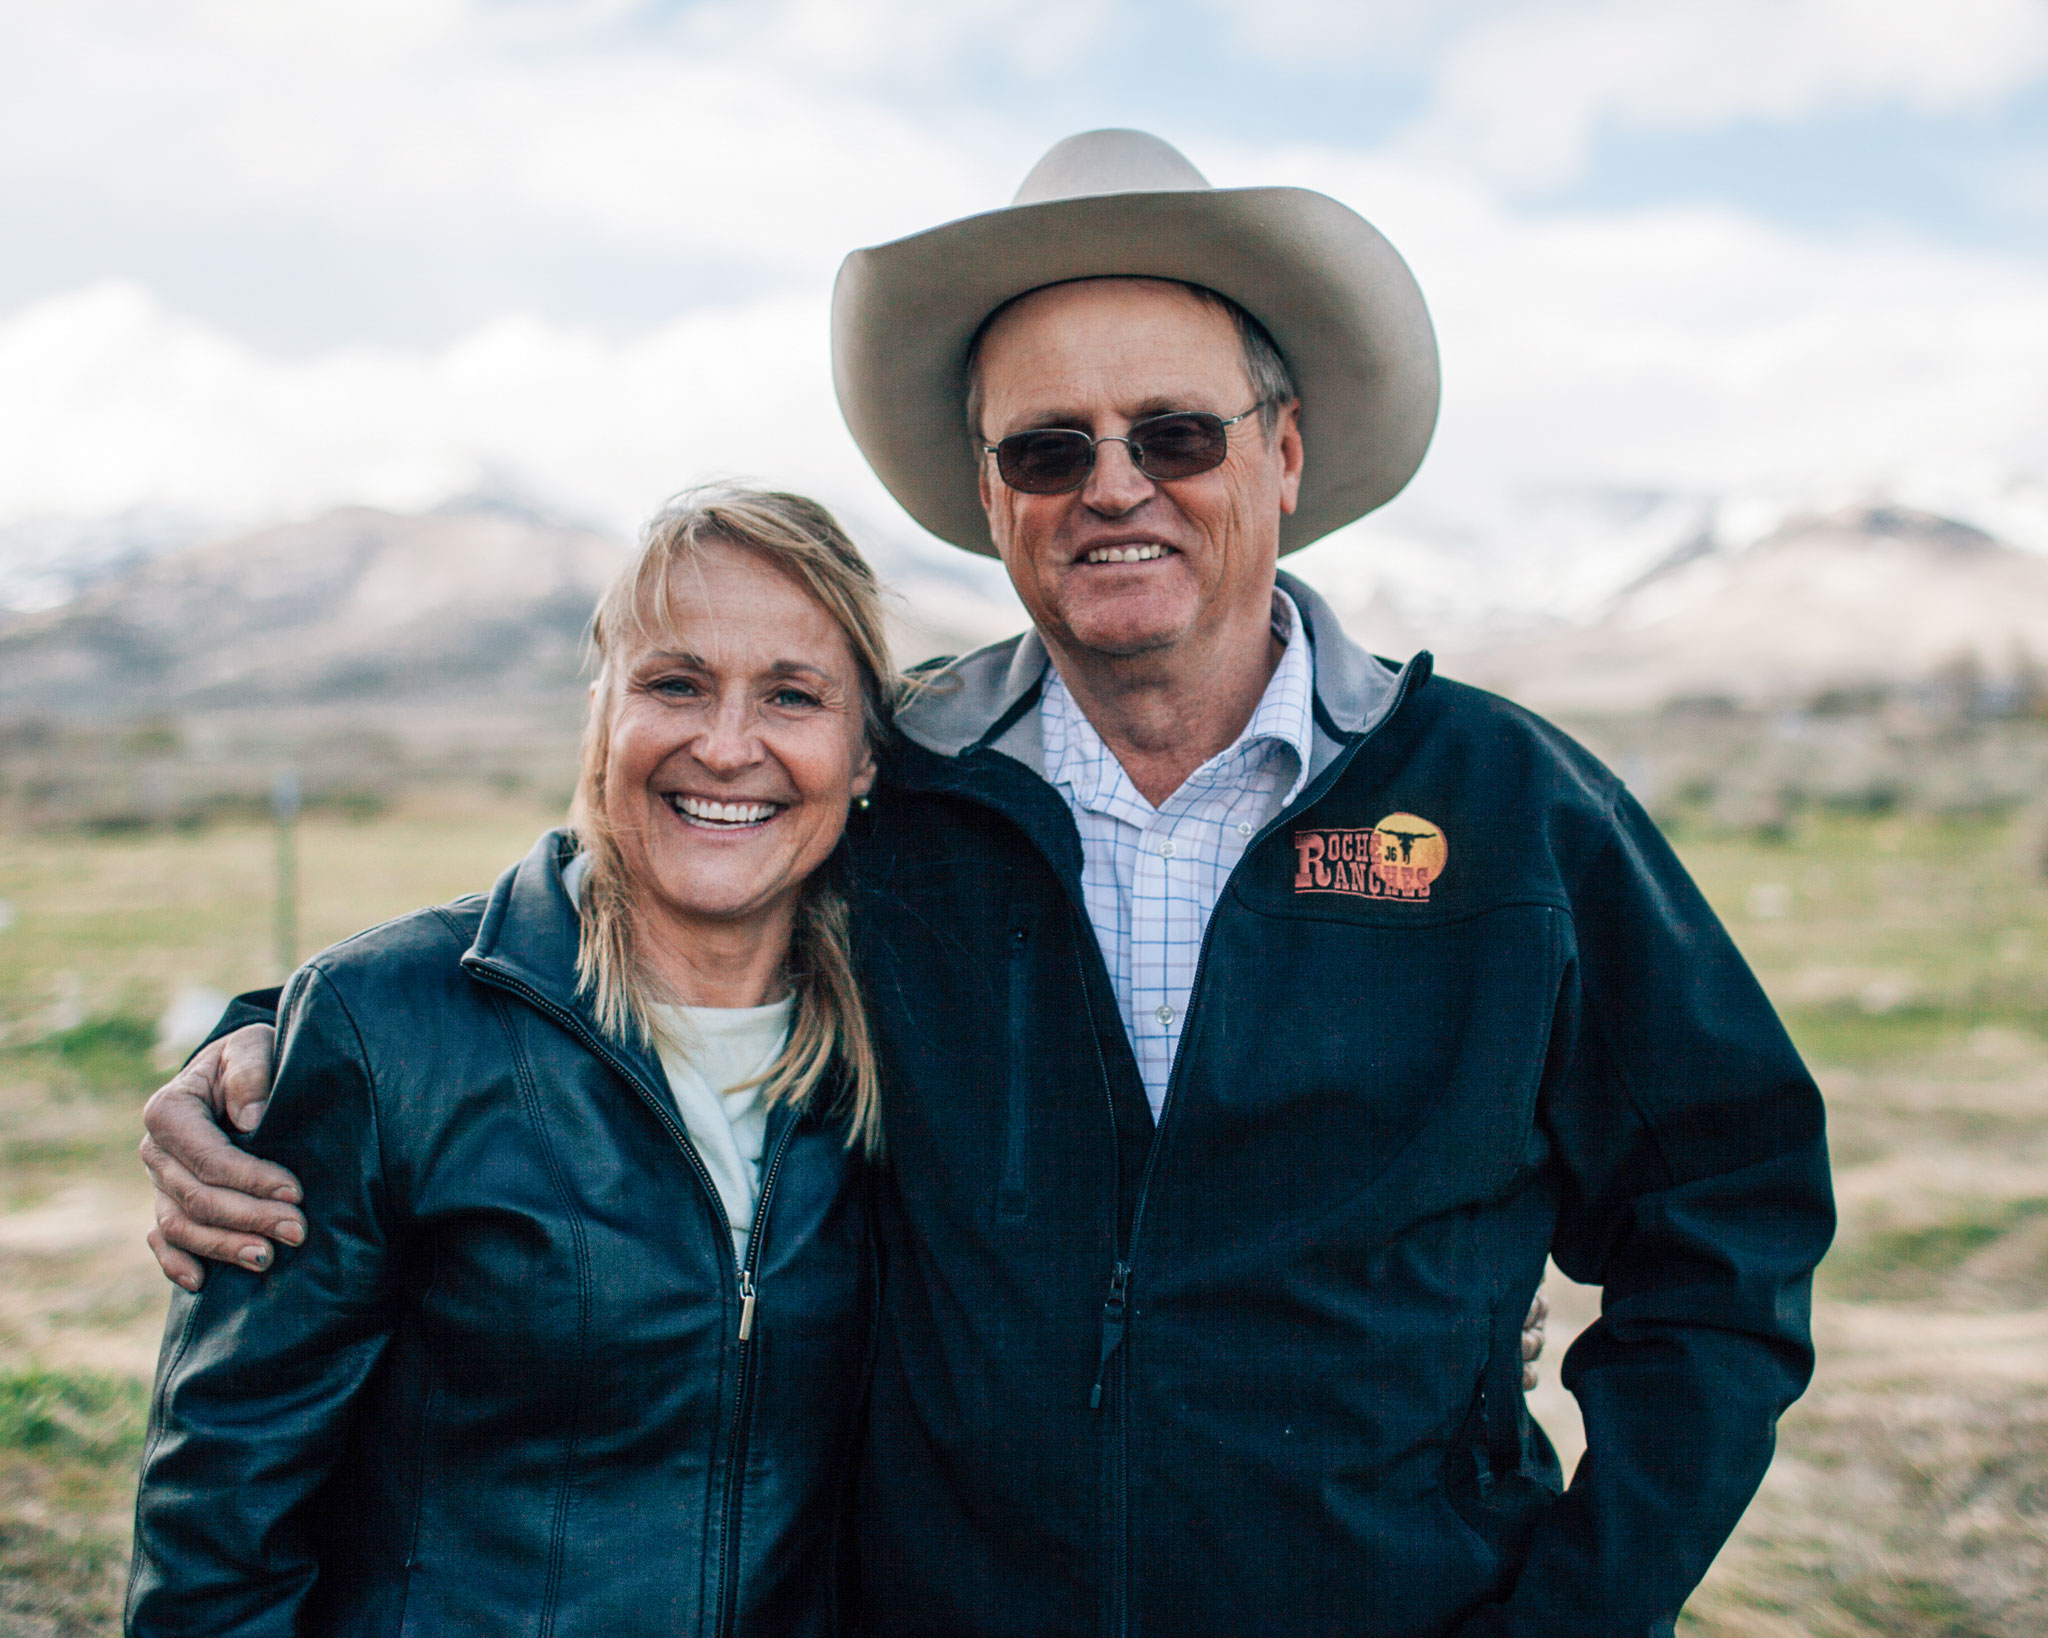 Ranchers Diane and Jay Tanner have been at the forefront of the community-driven effort to manage working lands while protecting sagebrush and the Greater Sage-Grouse in Box Elder County, Utah. Mandi Casolo